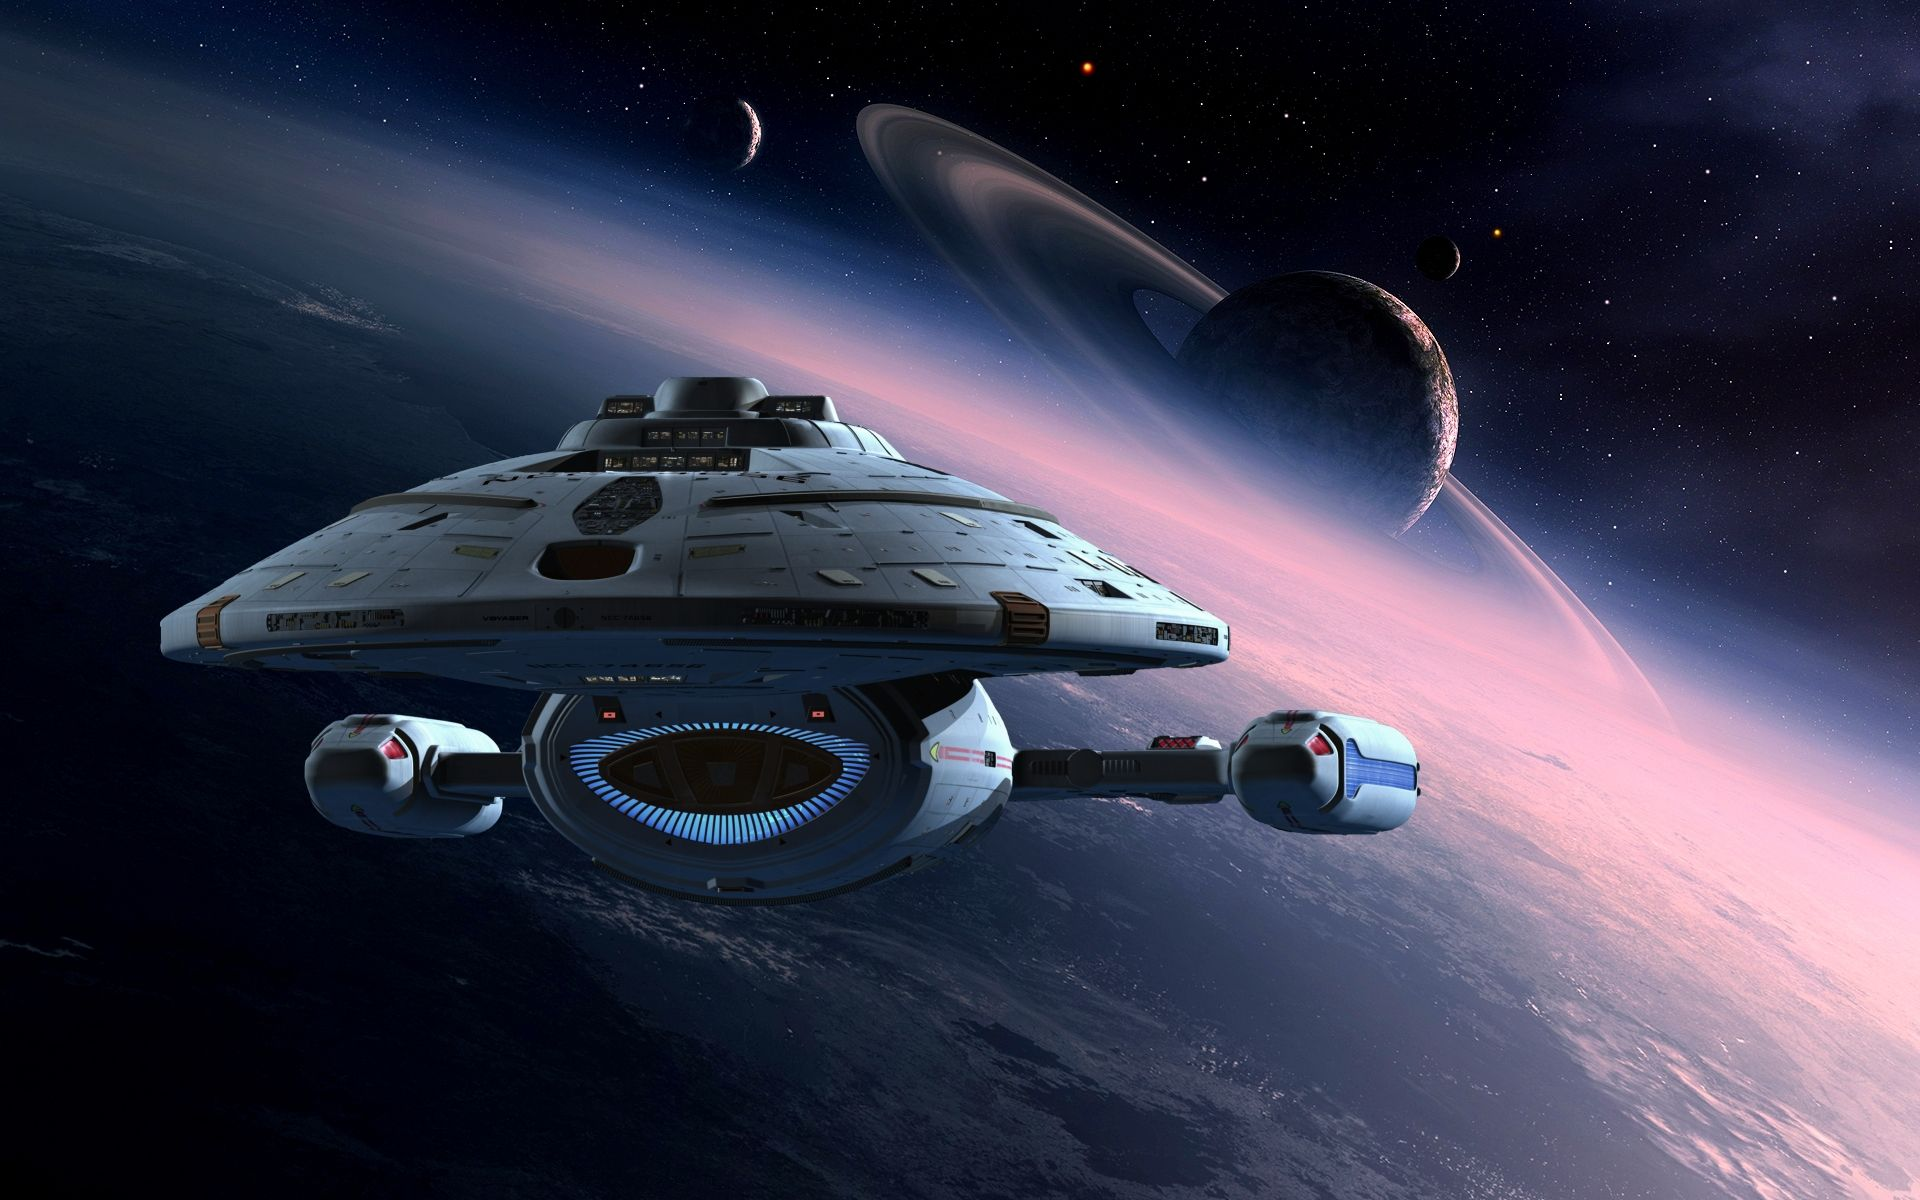 10 Top Star Trek Voyager Wallpaper Full Hd 1080p For Pc Desktop Star Trek Voyager Ship Star Trek Wallpaper Star Trek Voyager